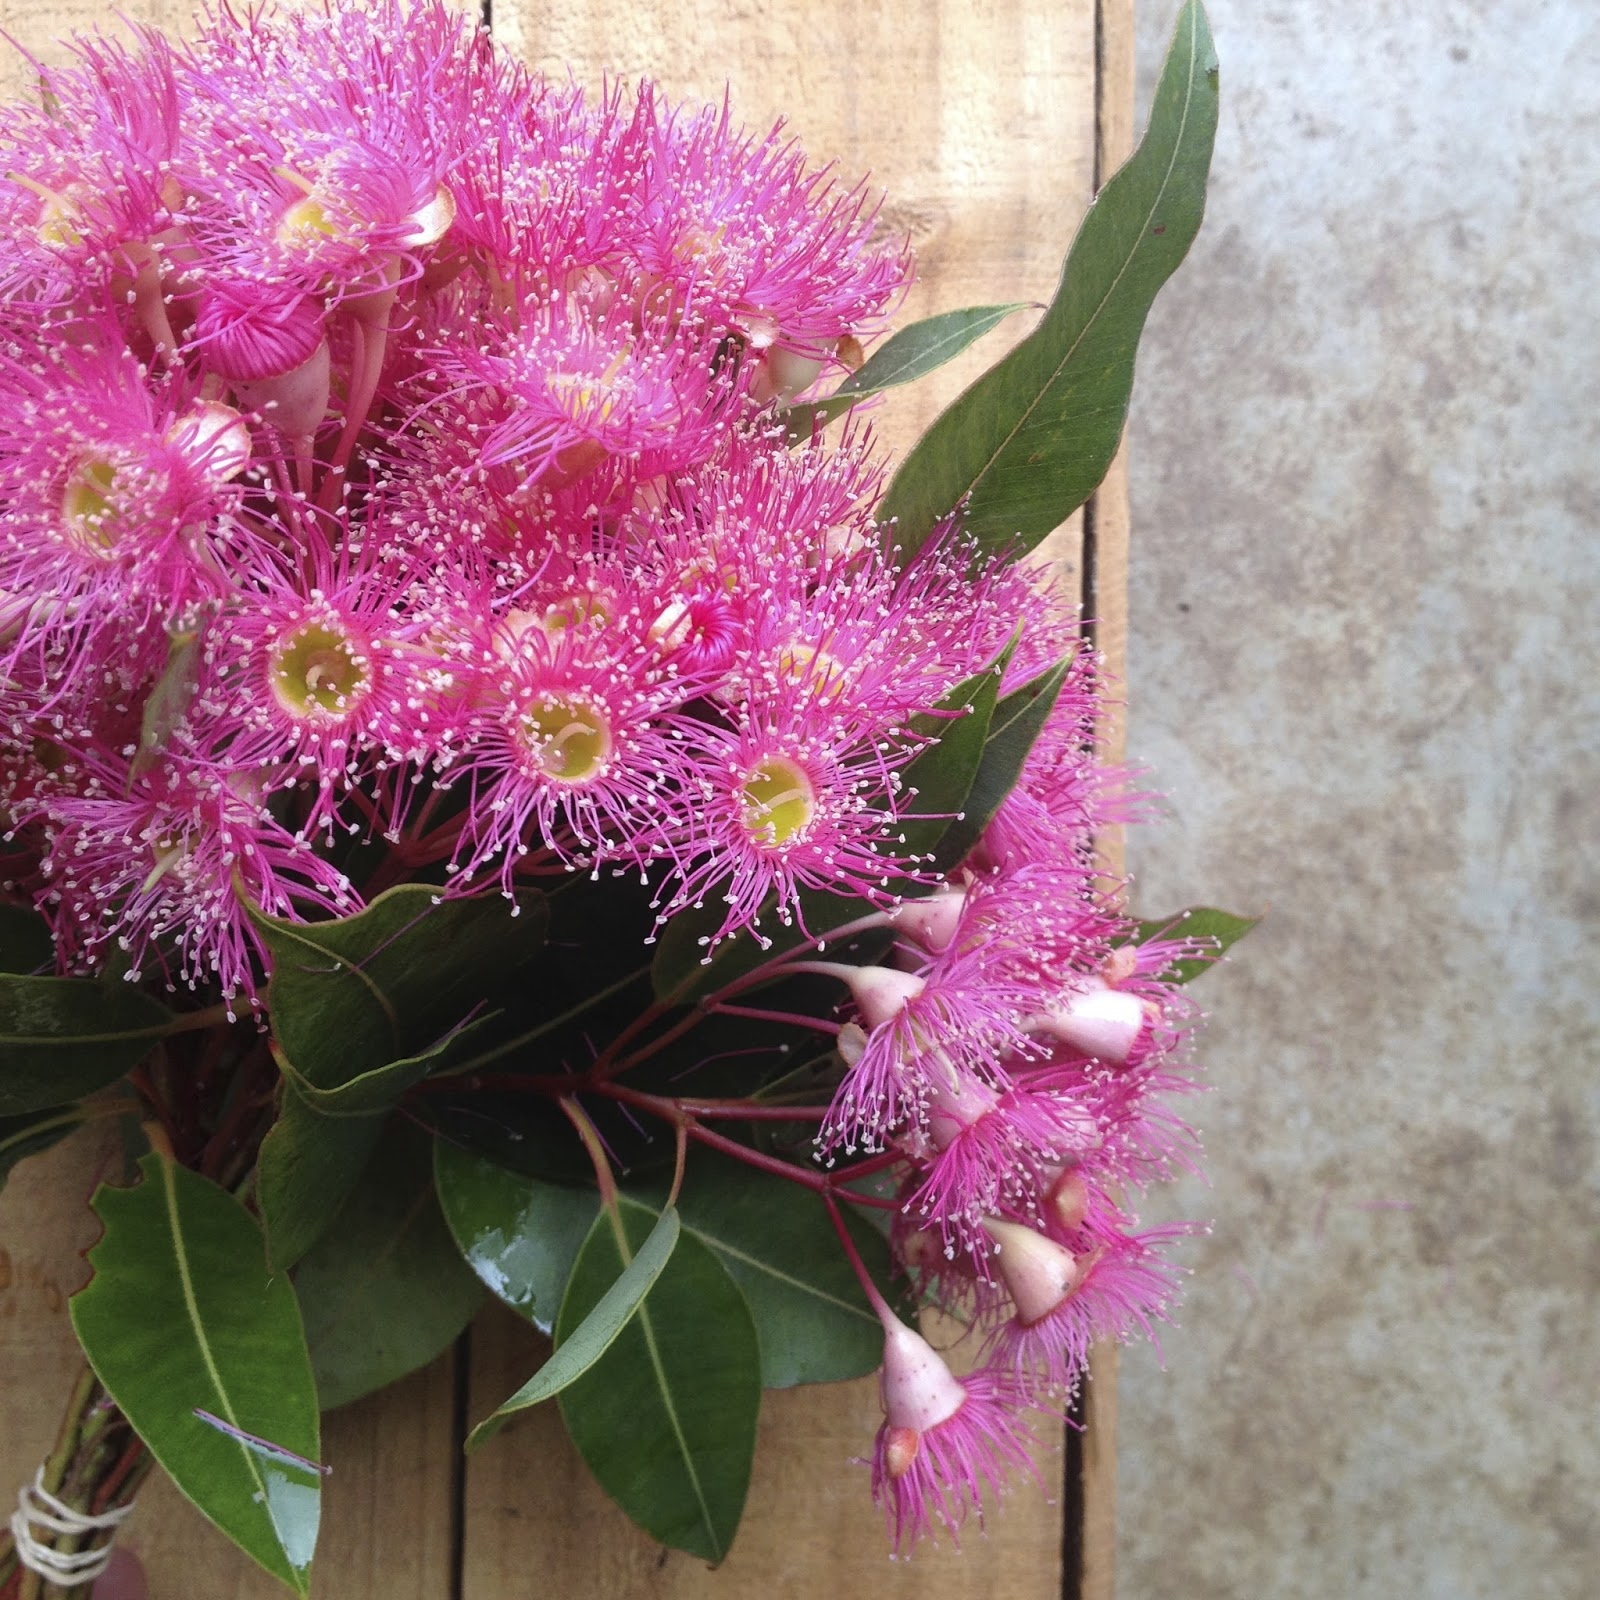 Swallows nest farm march flowers bright pink corymbia ficifolia flowering gum in a range of red pink and orange mightylinksfo